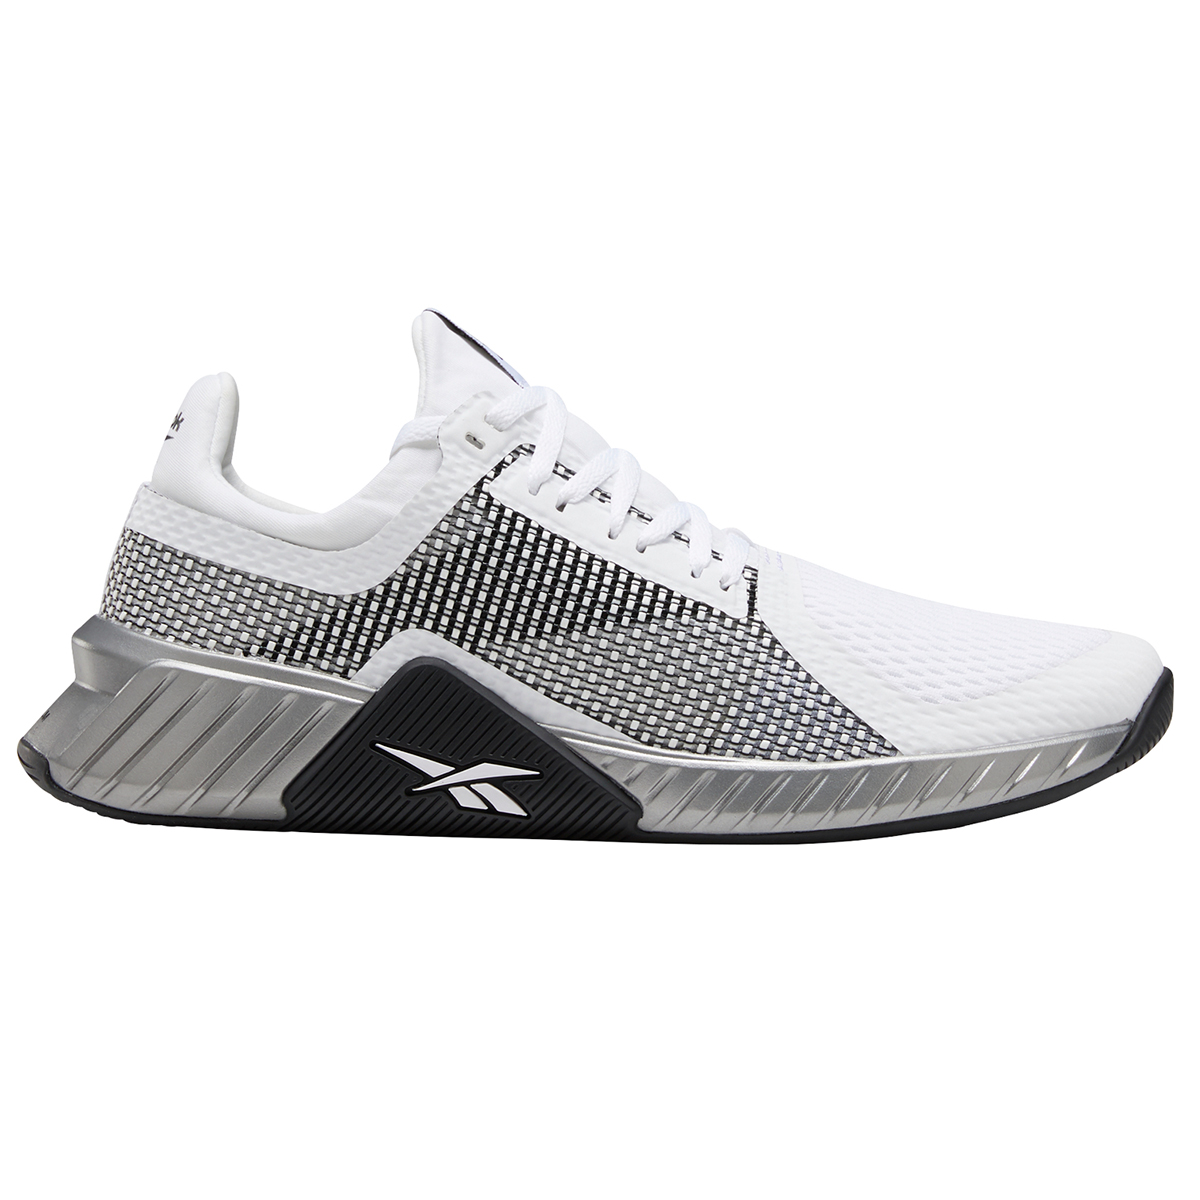 Reebok Men's Flashflim Training Shoes - White, 9.5